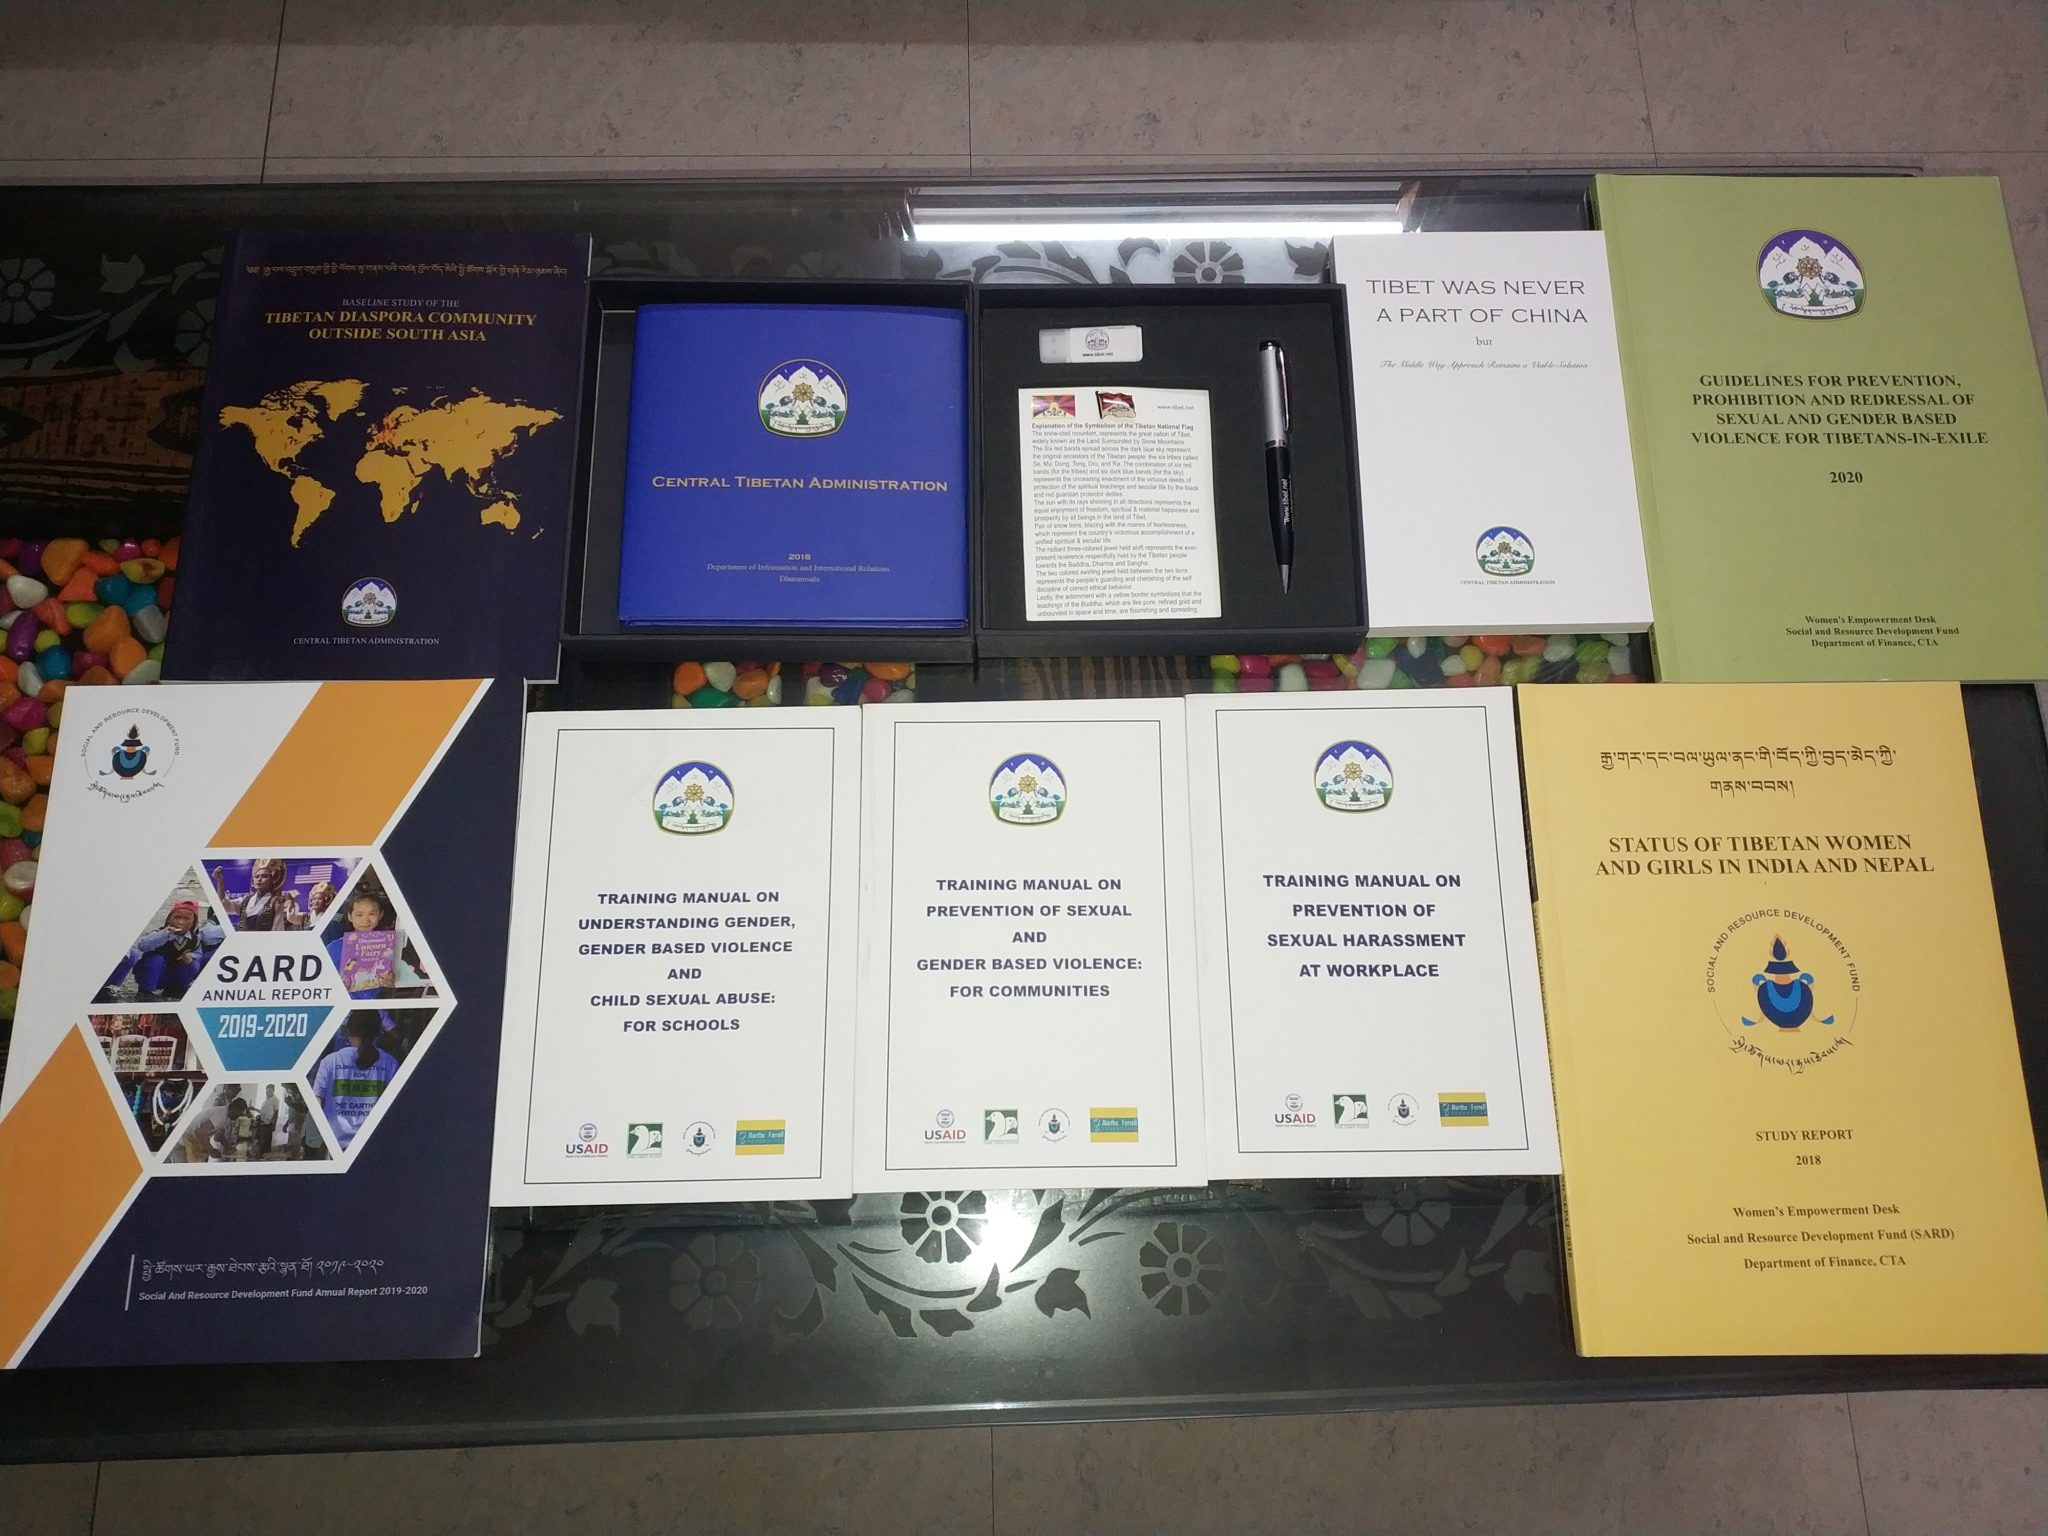 Book titles include: SARD Annual Report 2019-20, Training Manual on Understanding Gender, Gender Based Violence and Child Sexual Abuse, Status of Tibetan Women and Girls in India and Nepal, Training Manual on Prevention of Sexual Harassment at Workplace, Tibetan Diaspora Community Outside of South Asia.